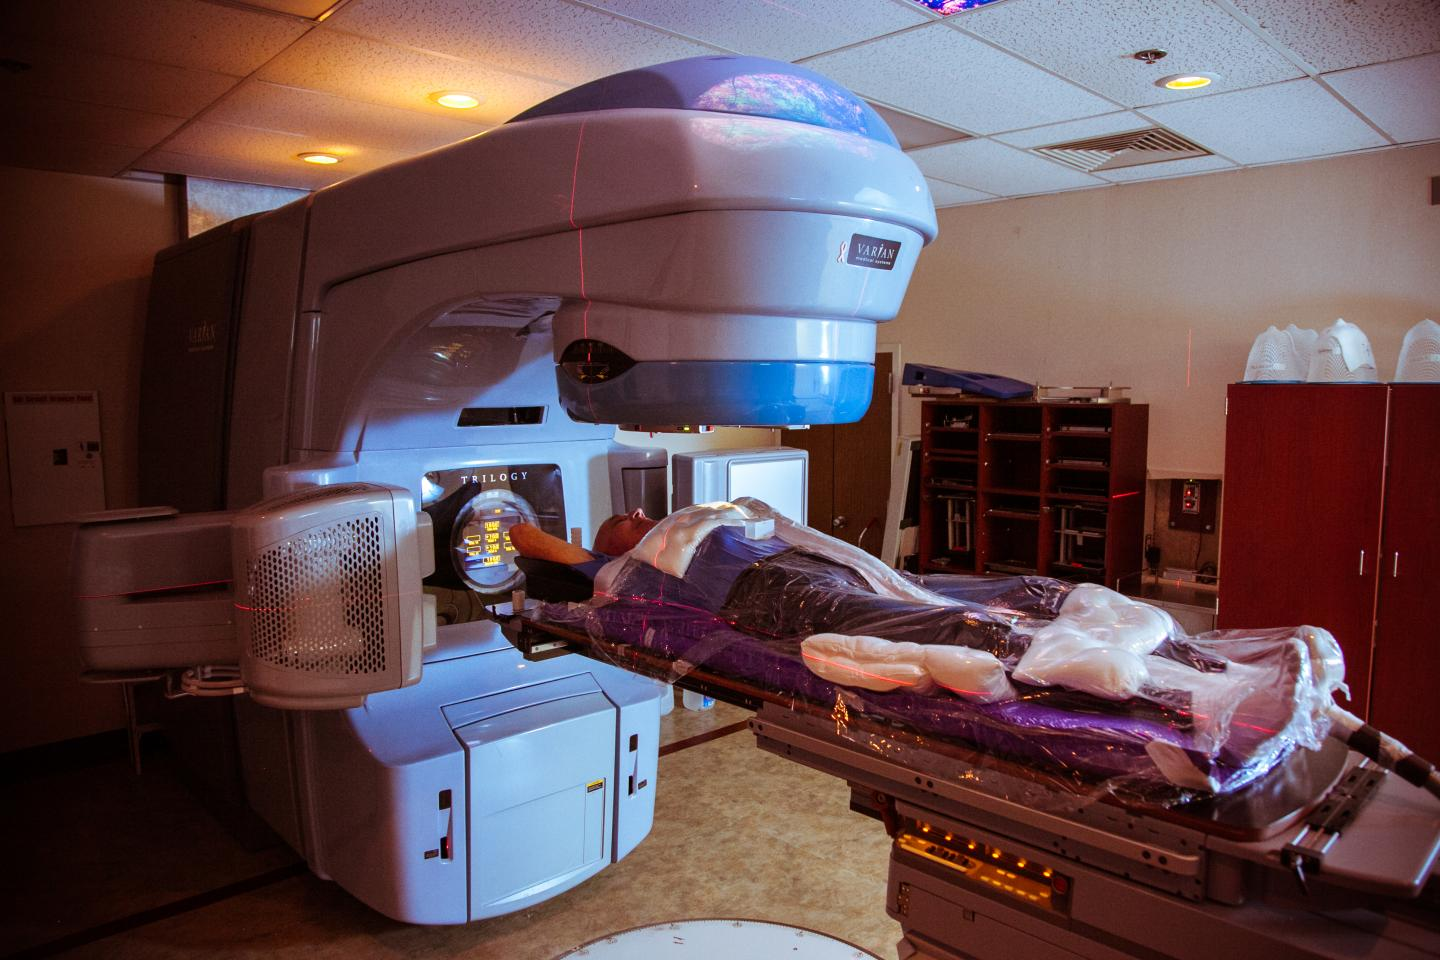 Pictures of and radiation chest wall inflammation and radiation - A Patient Receives Stereotactic Body Radiation Therapy Sbrt To Treat Lung Cancer Credit American Society For Radiation Oncology Adam Donohue